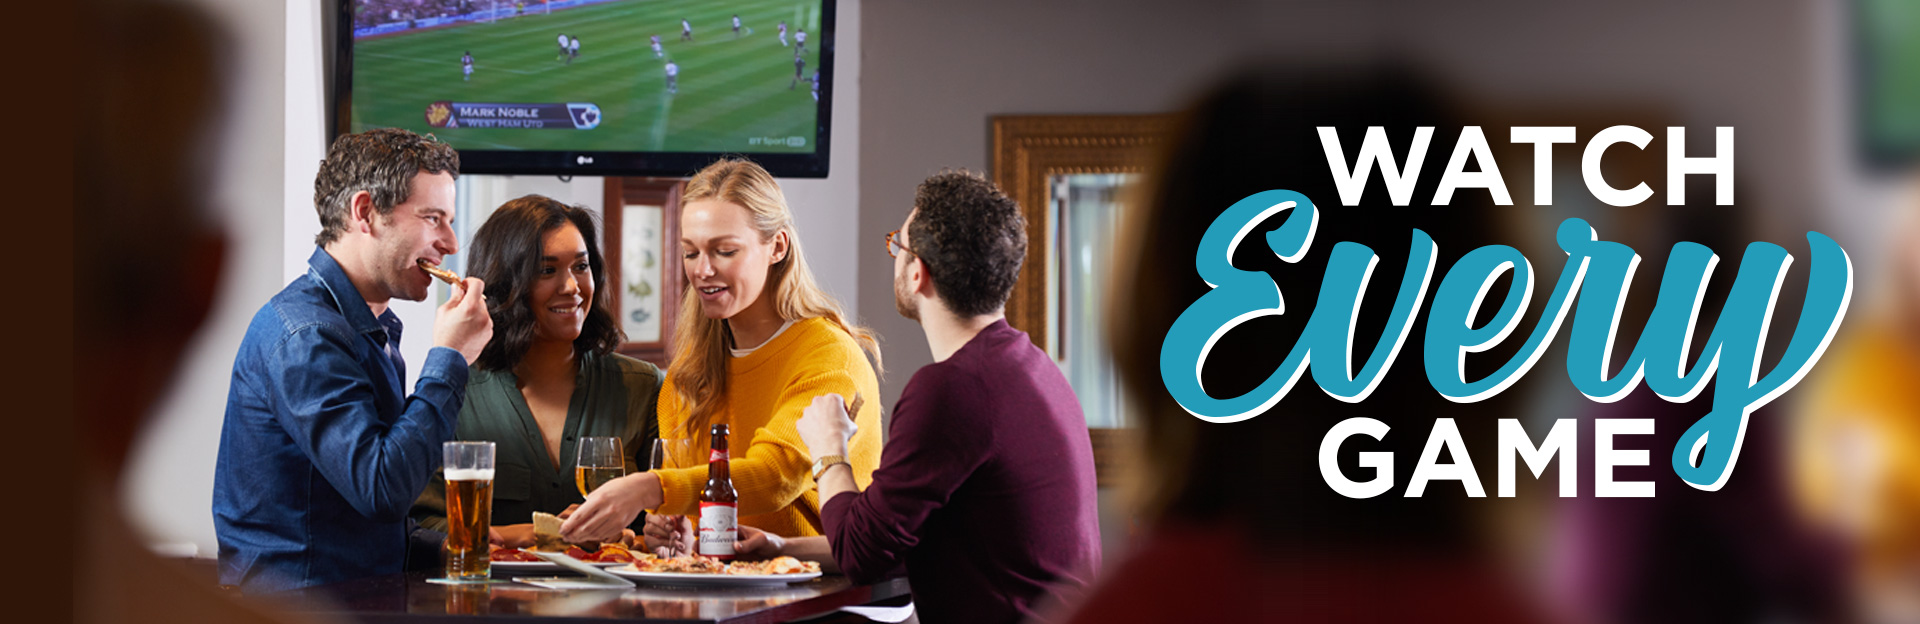 Watch Sport at Barnbow